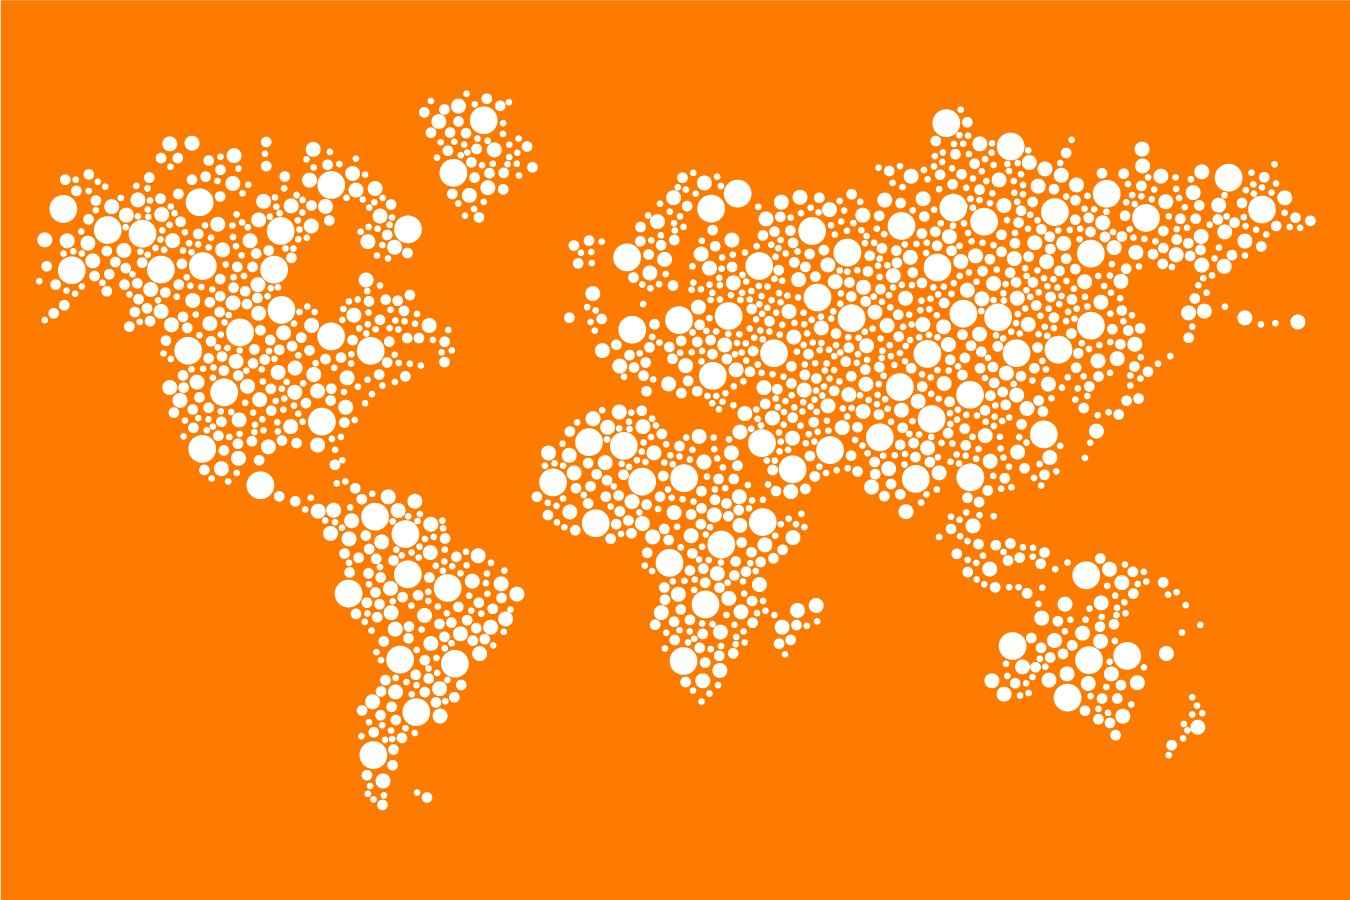 Dotted world map png